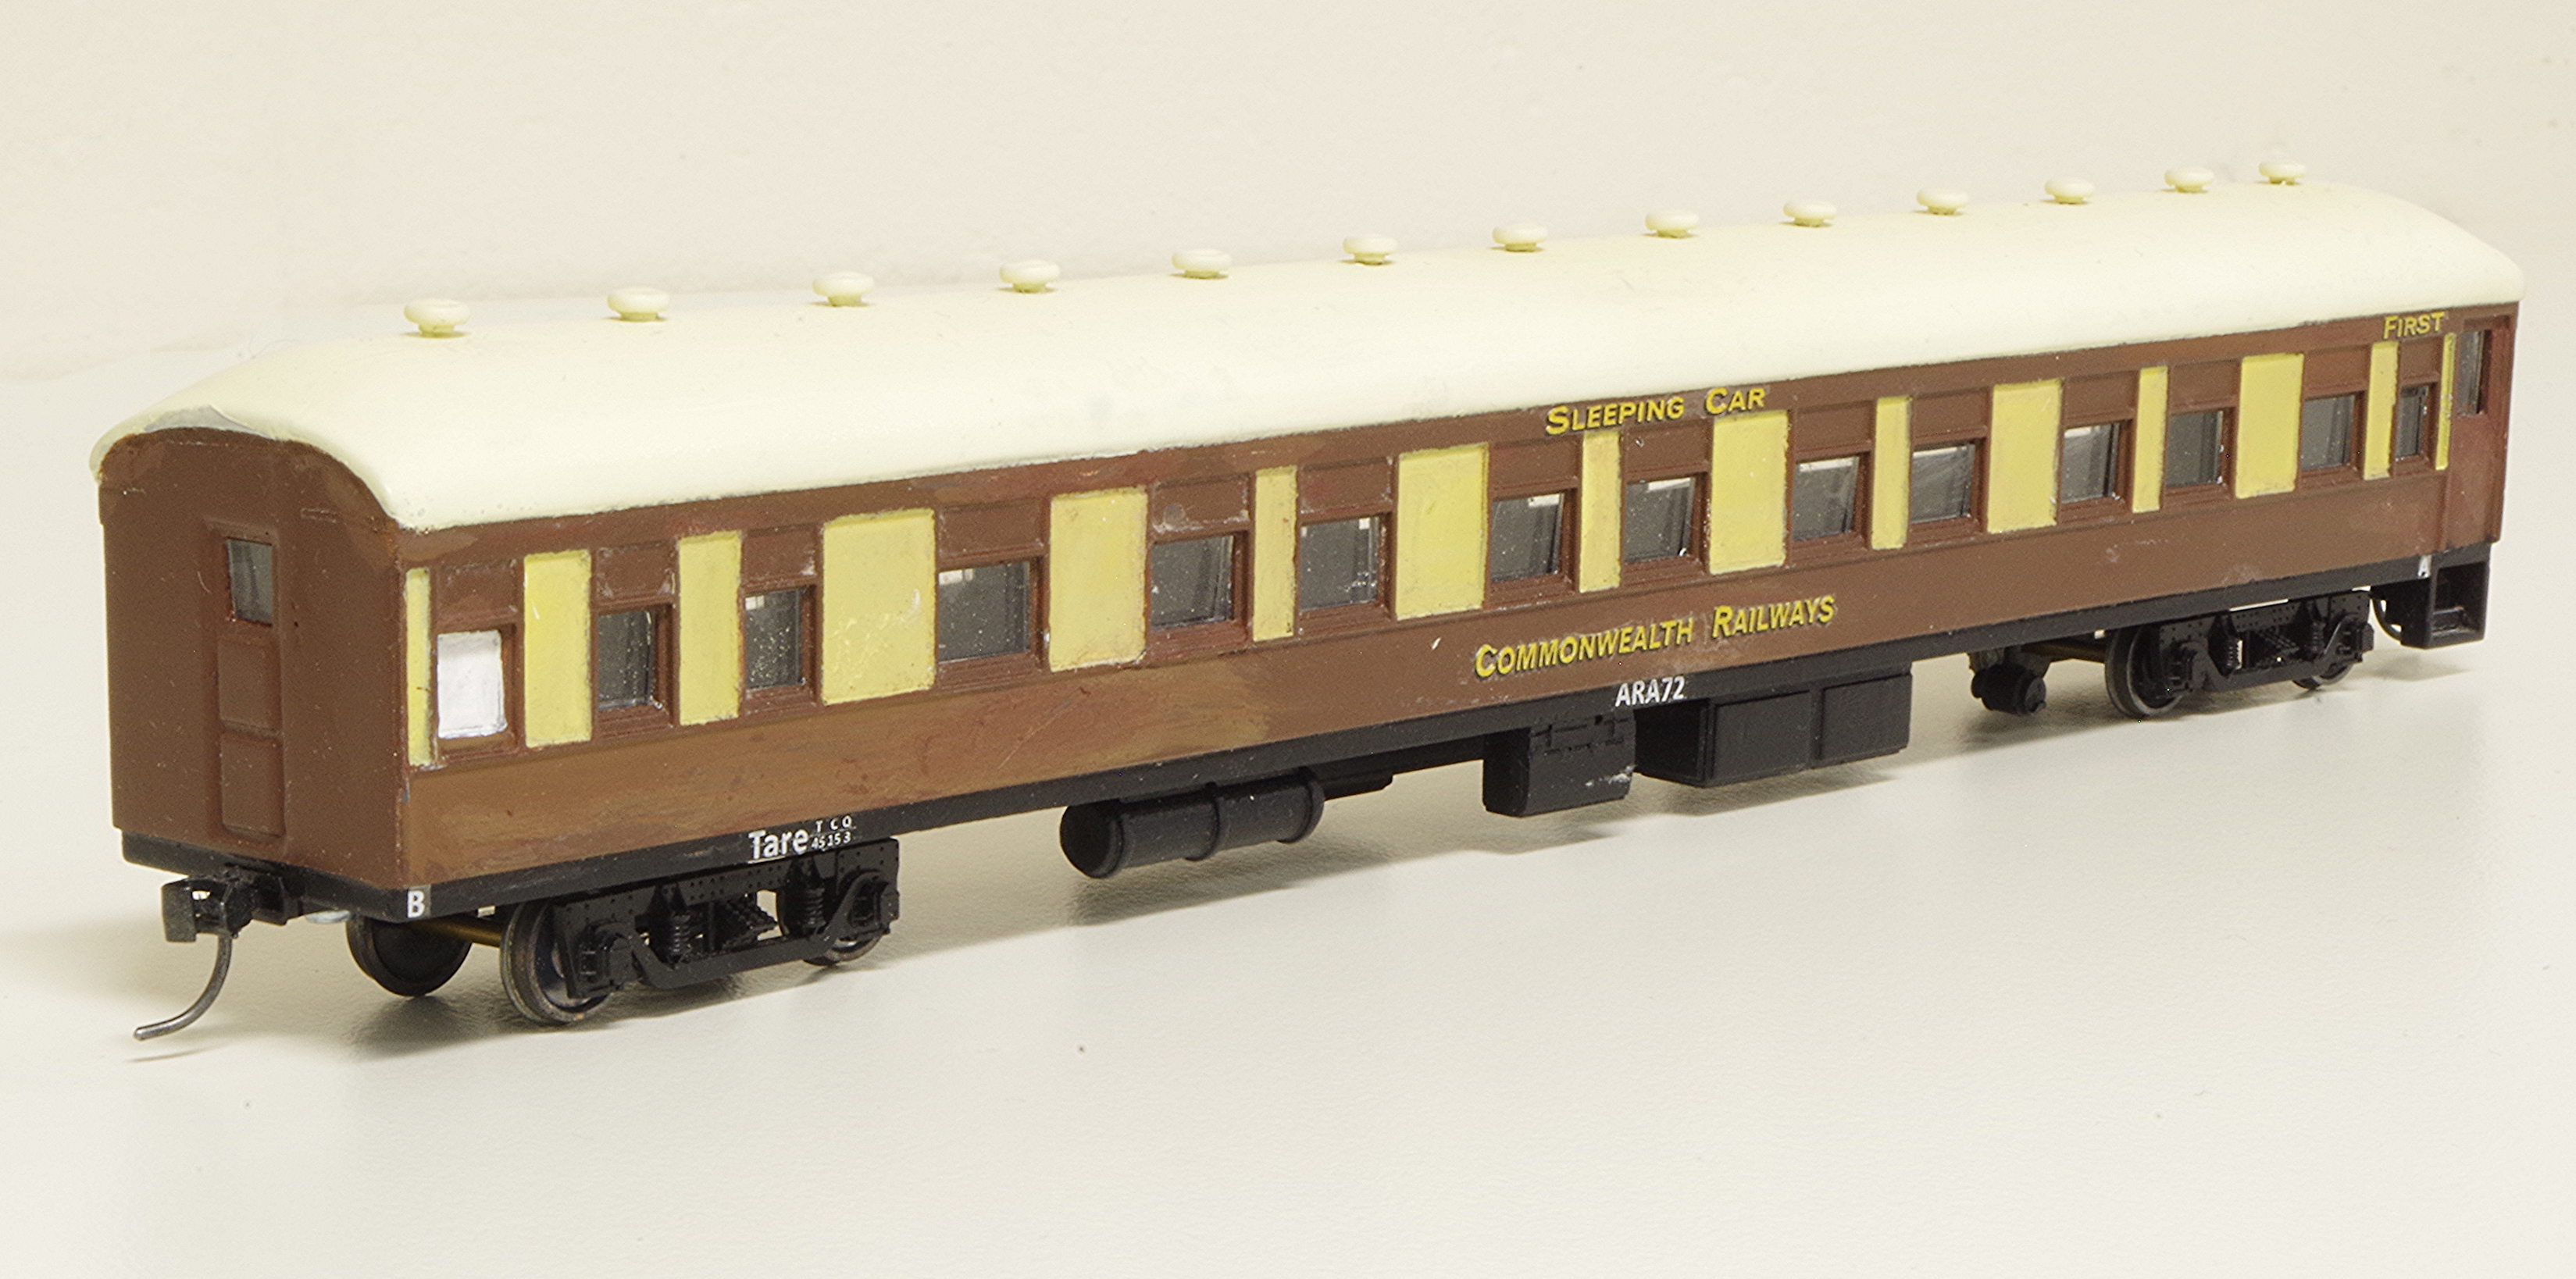 Commonwealth Railways First Class Sleeping Car ARA72